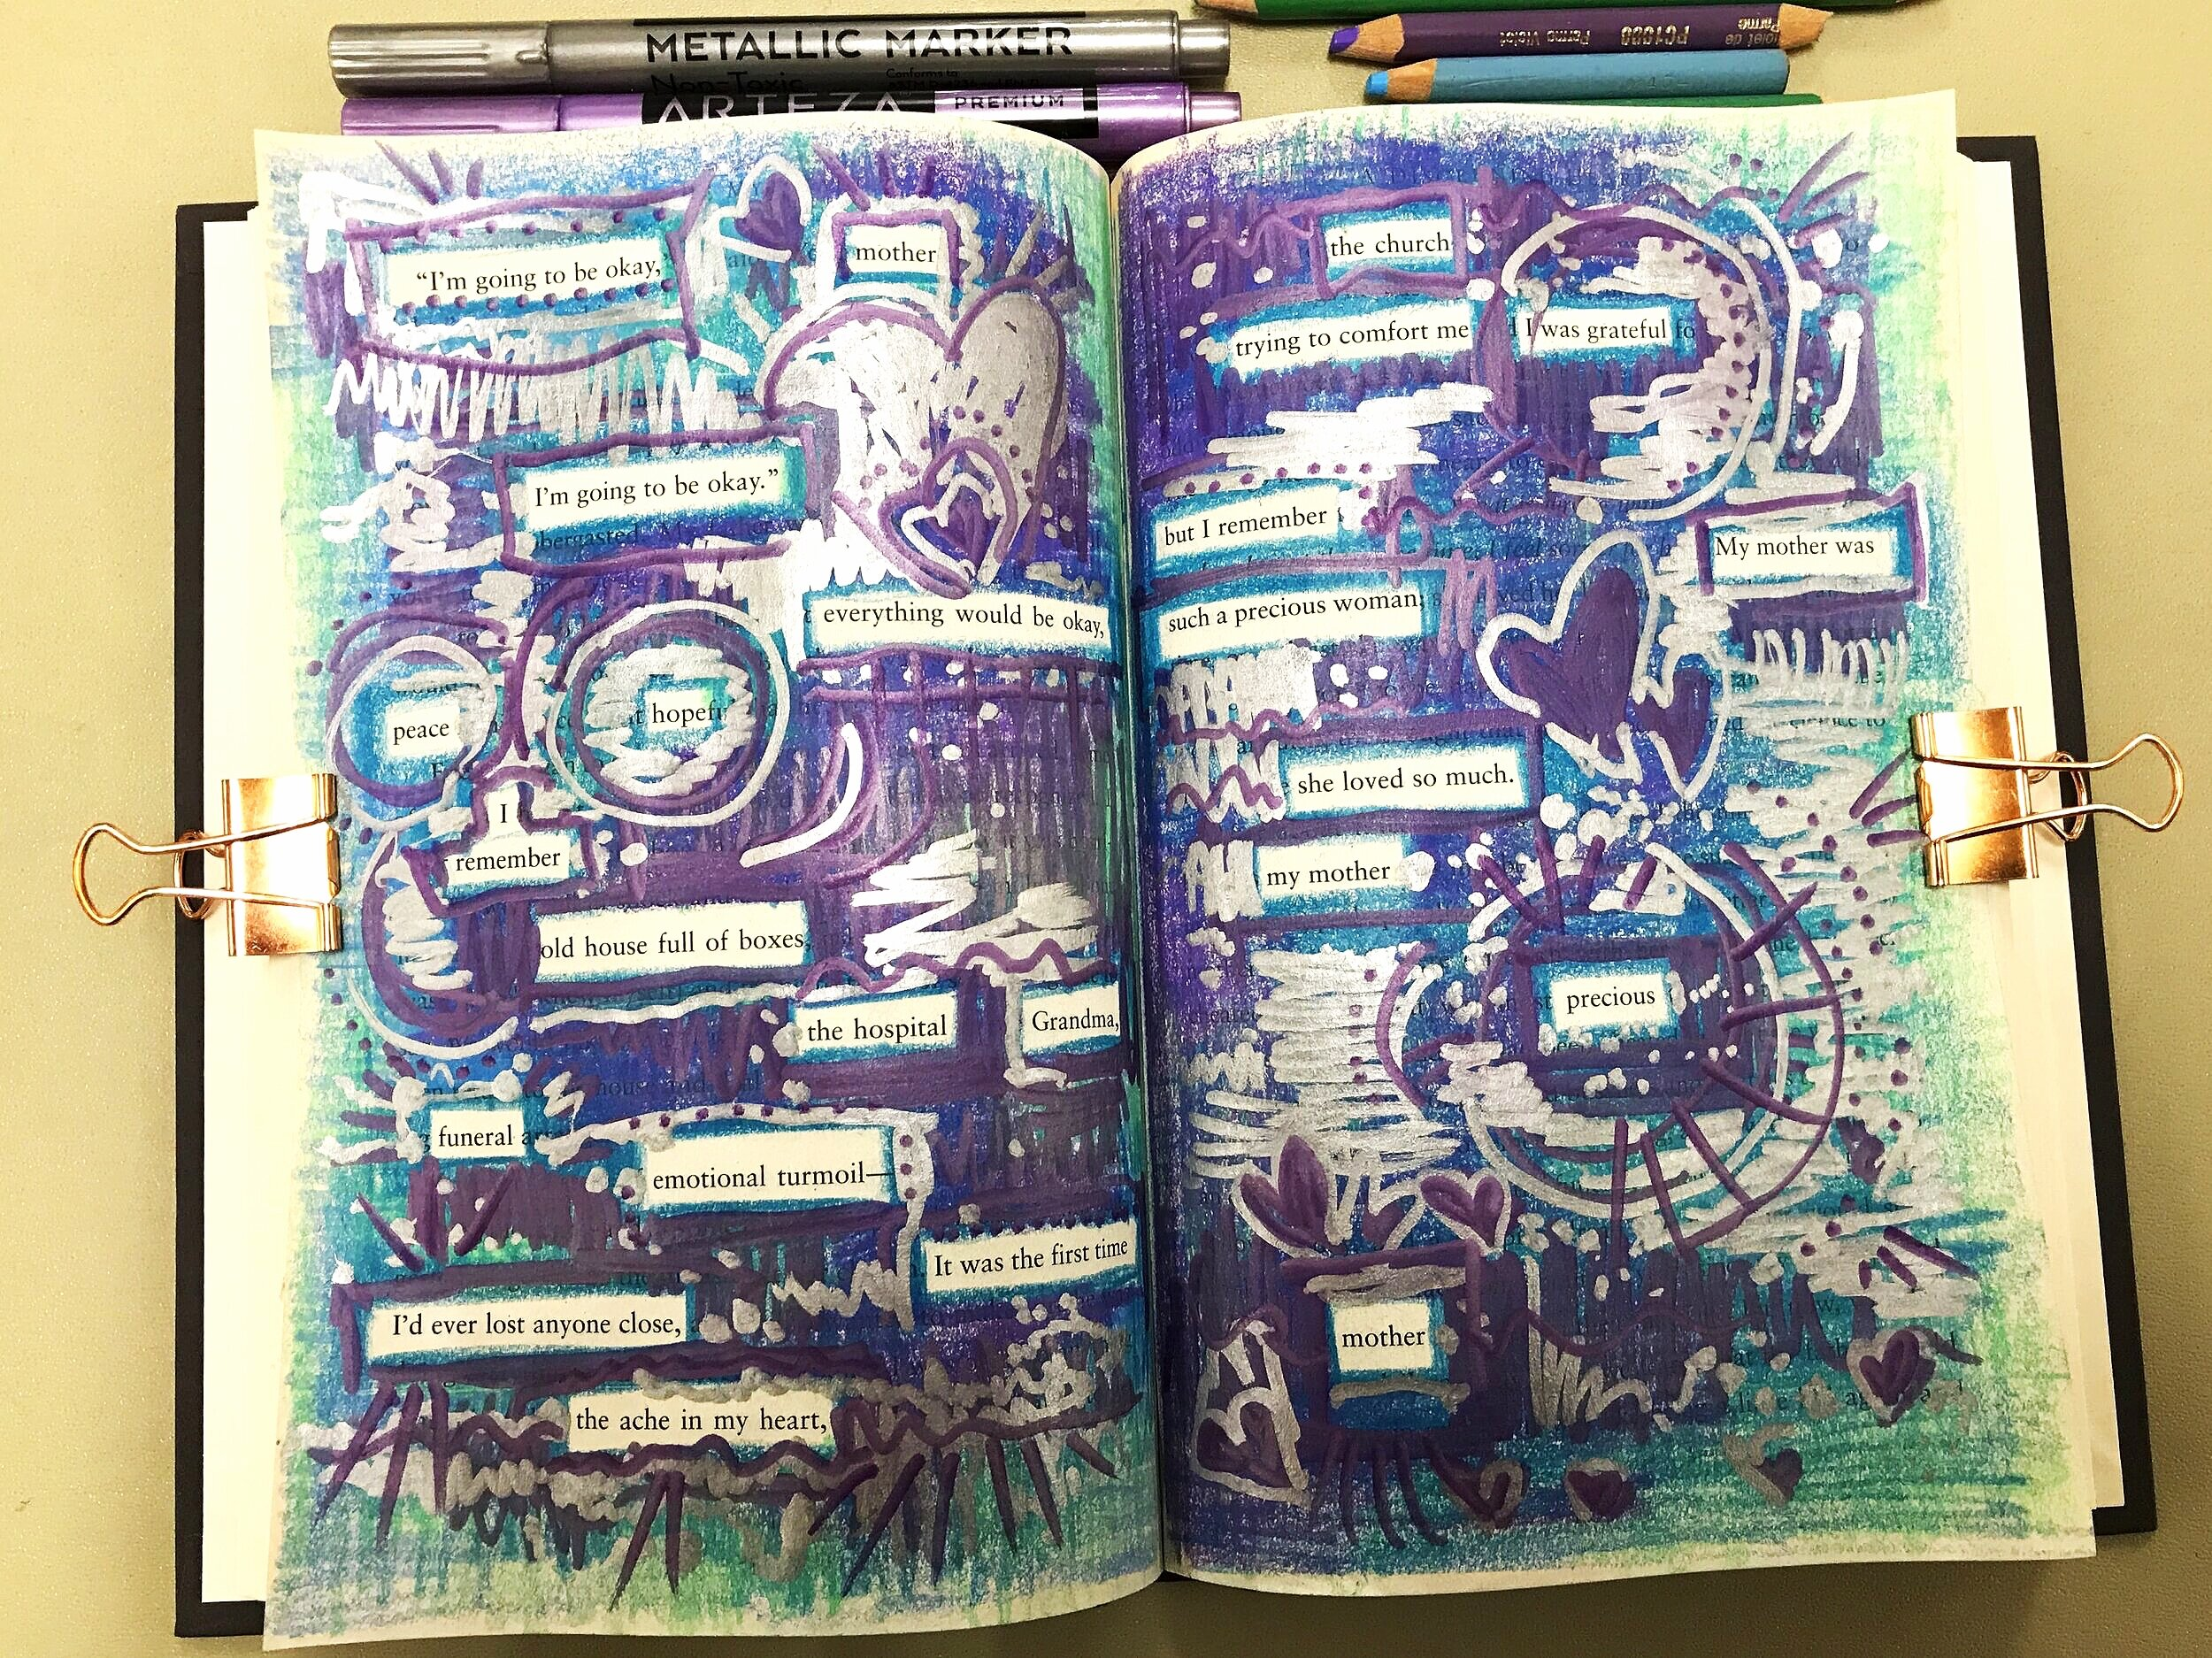 Completed page spread from book pages. See steps for poetry pages below.